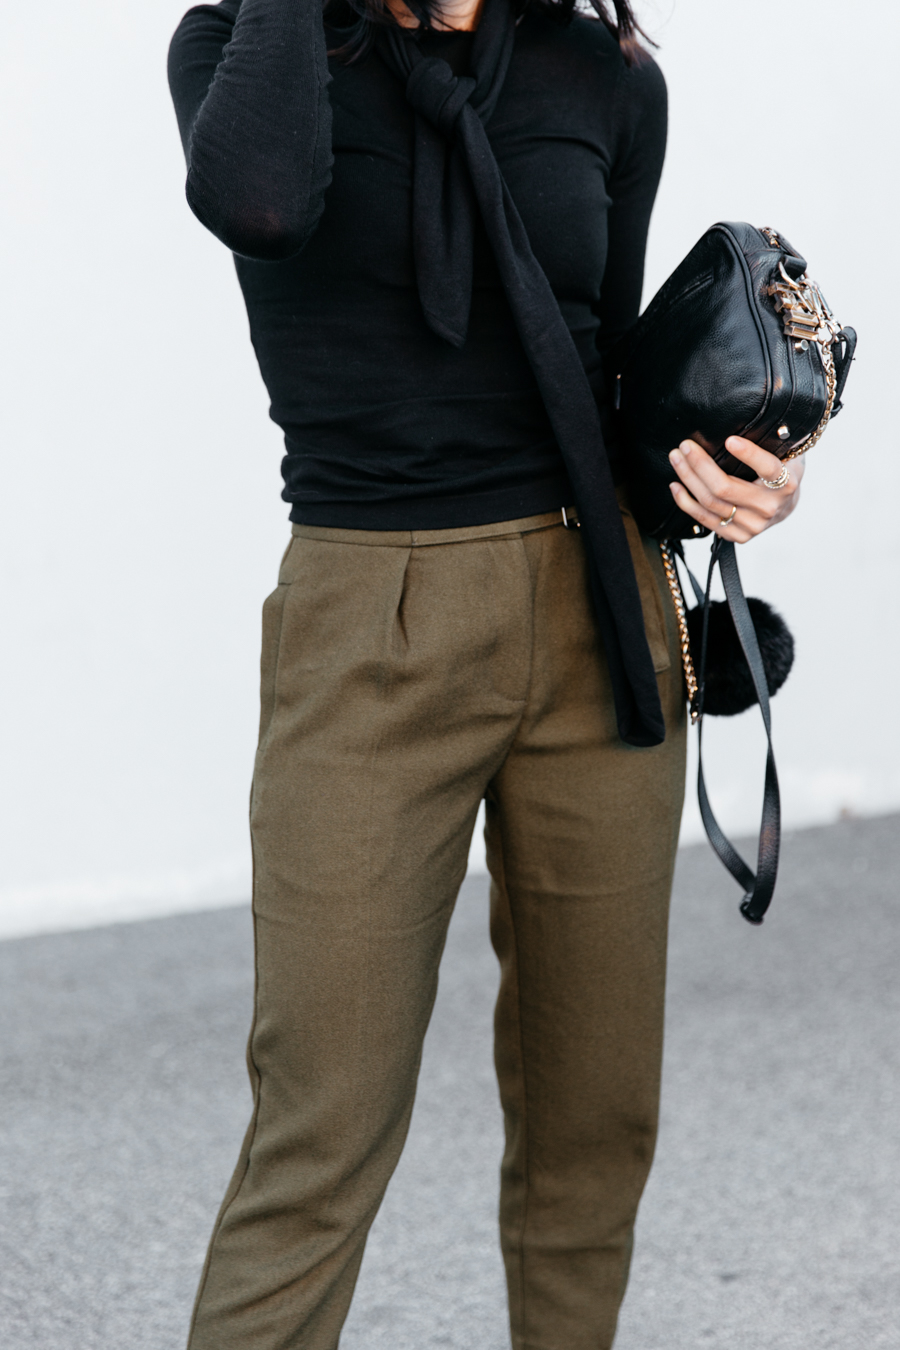 Khaki buckled crop pants. Khaki trousers.